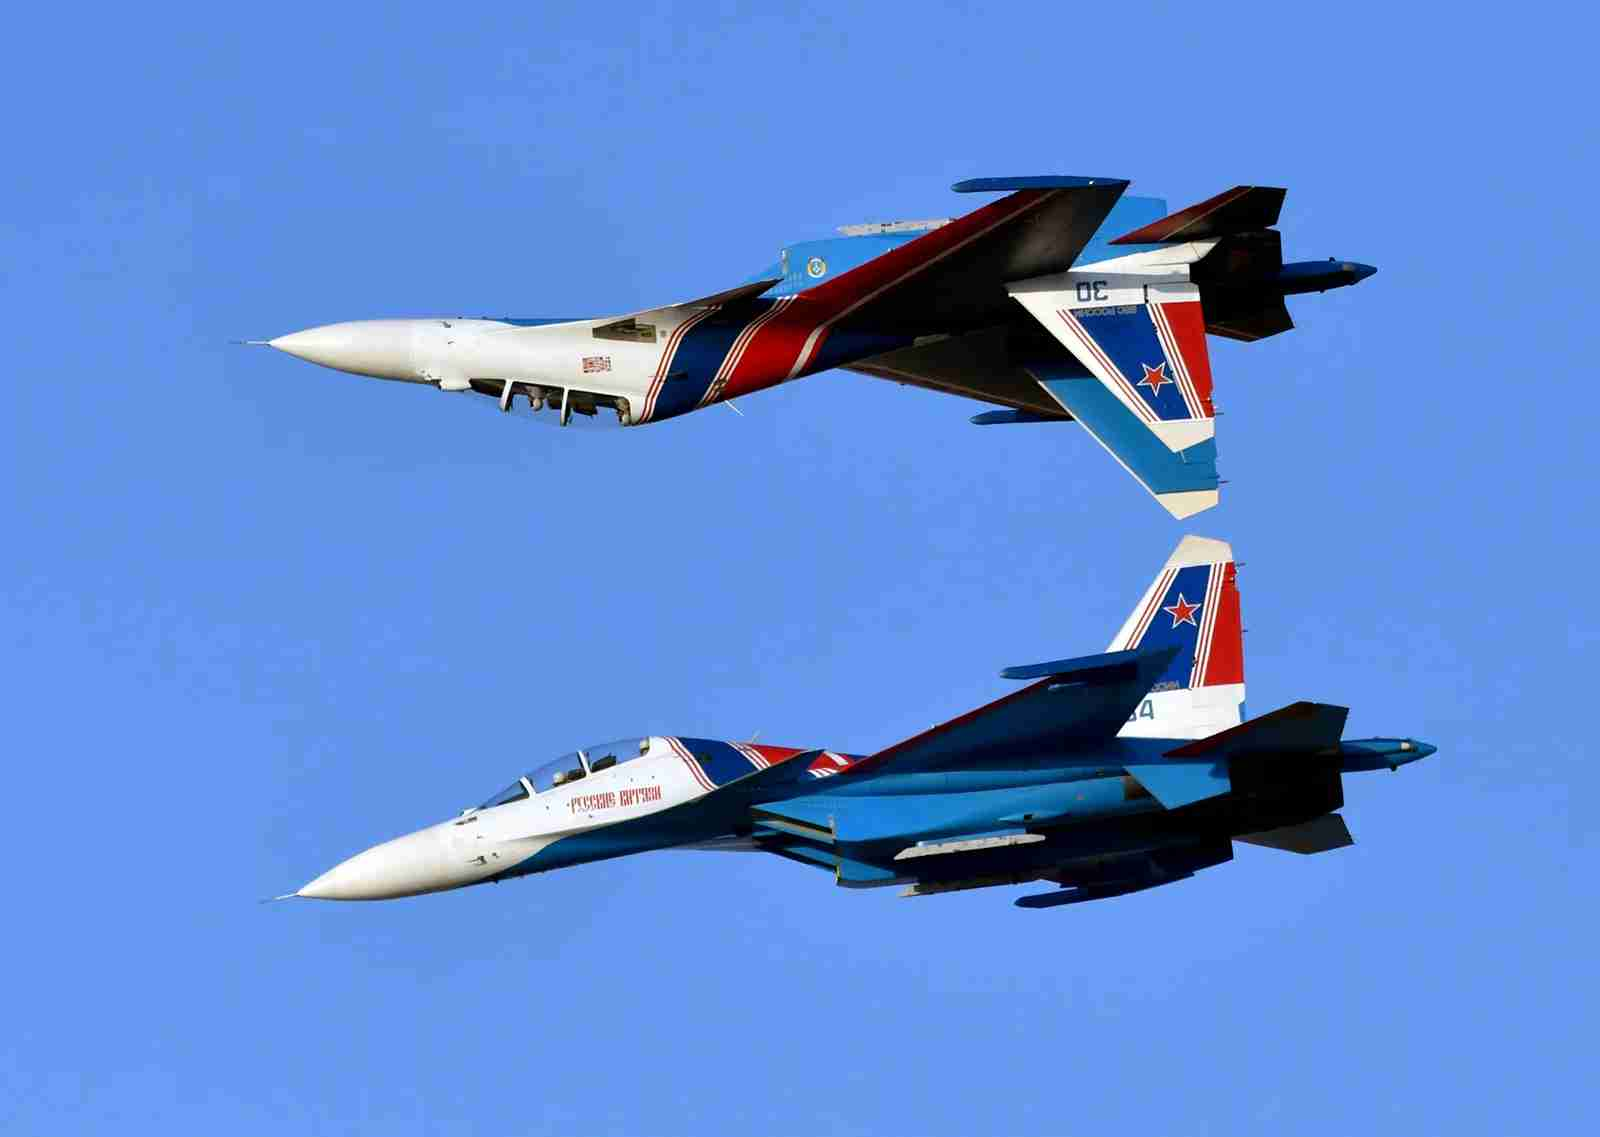 Two Sukhoi Su-30 Flanker of the Russian Air Force